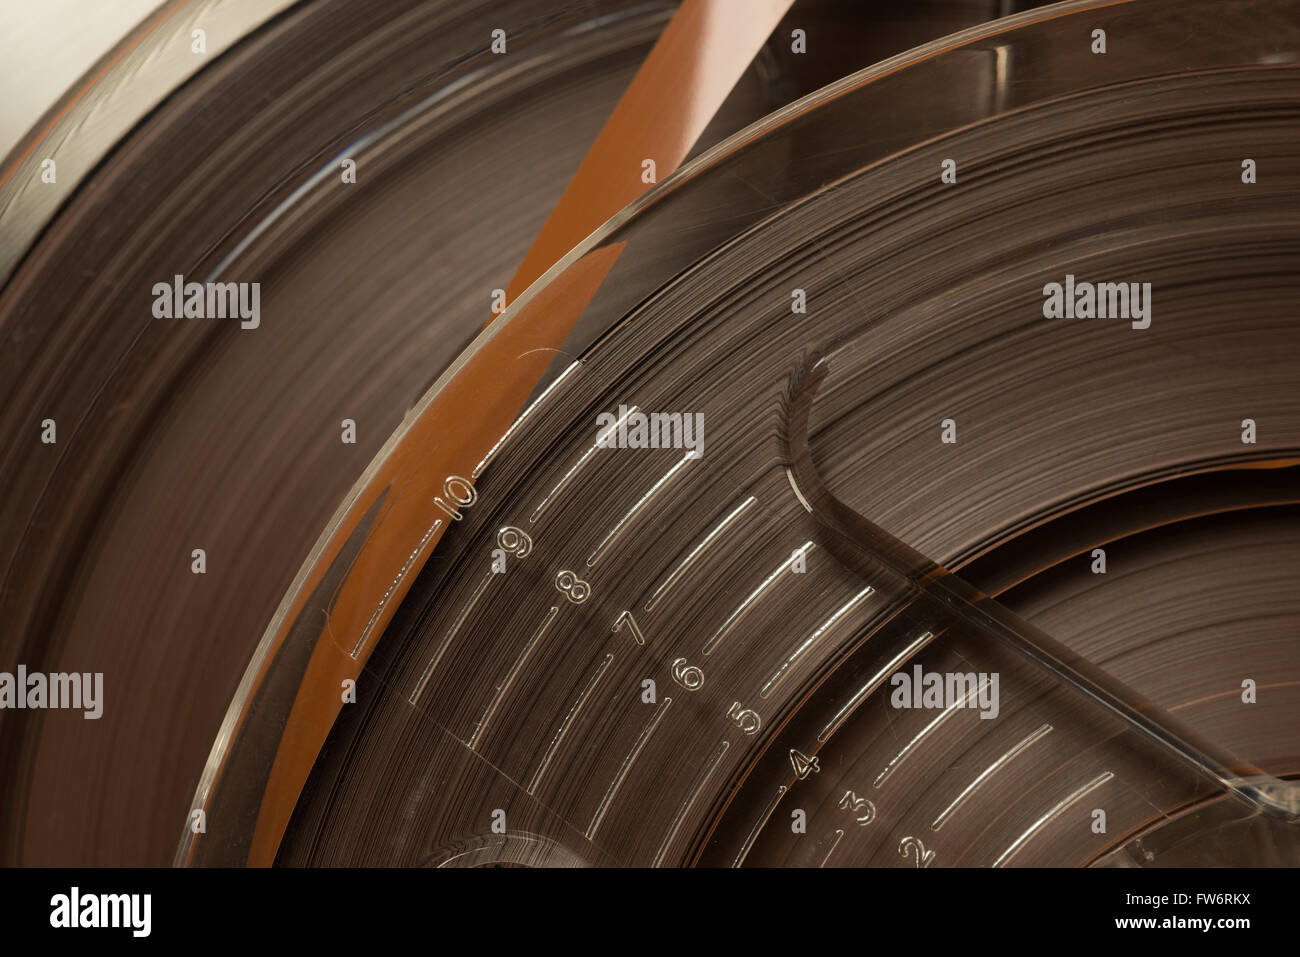 Analogue old fashioned not digital magnetic reel to reel tape sound audio recording wound up on reels - Stock Image